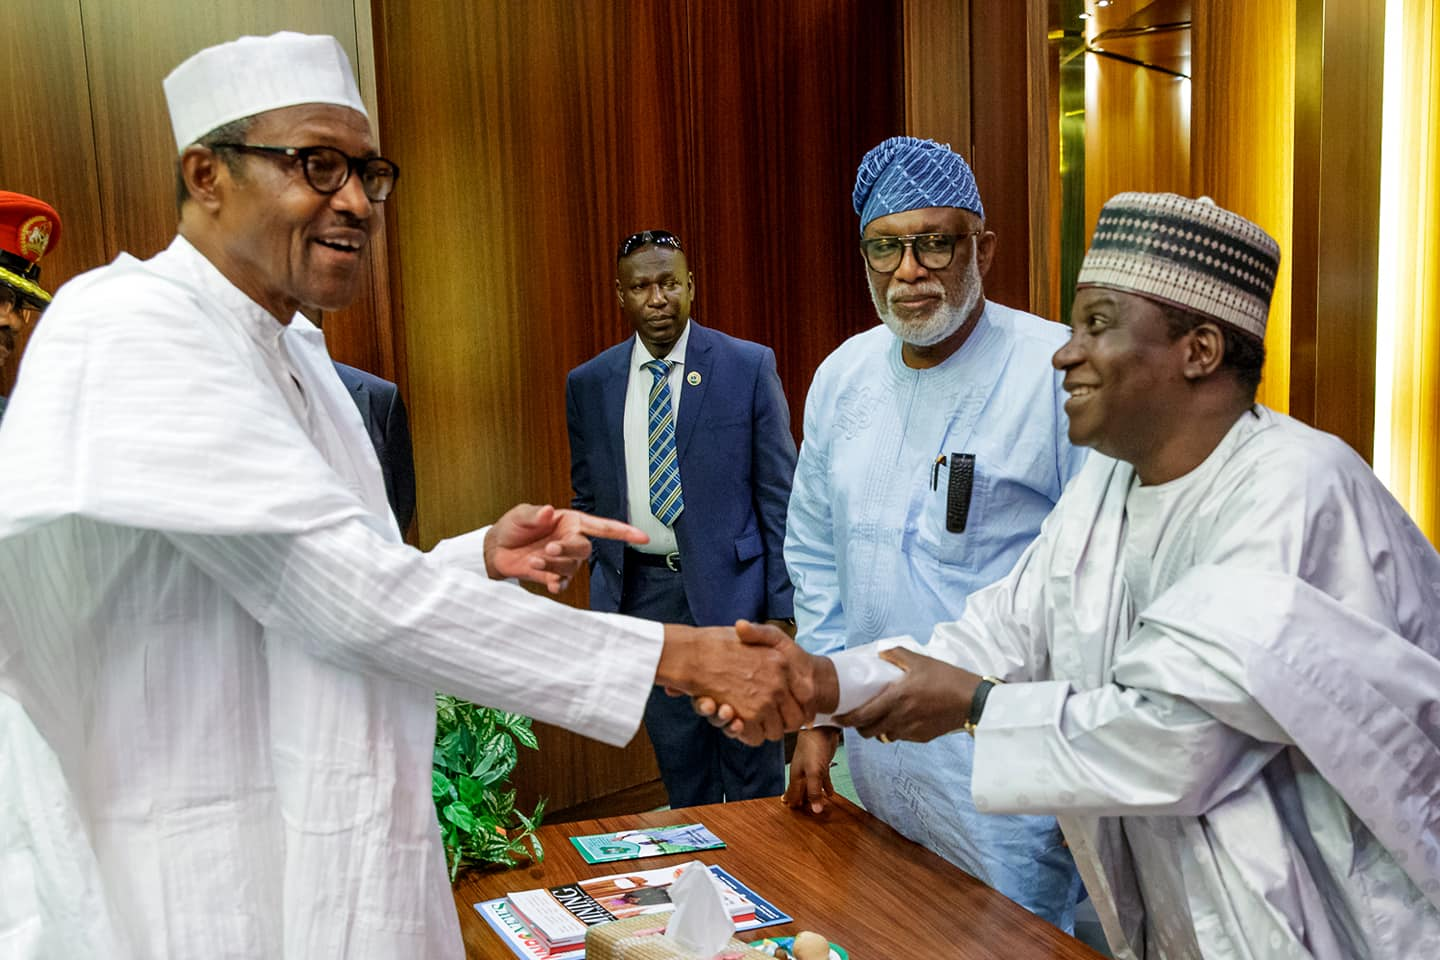 President Buhari Hold Closed Door Meeting with 9 APC Governors [See Photos] - OkayNG News